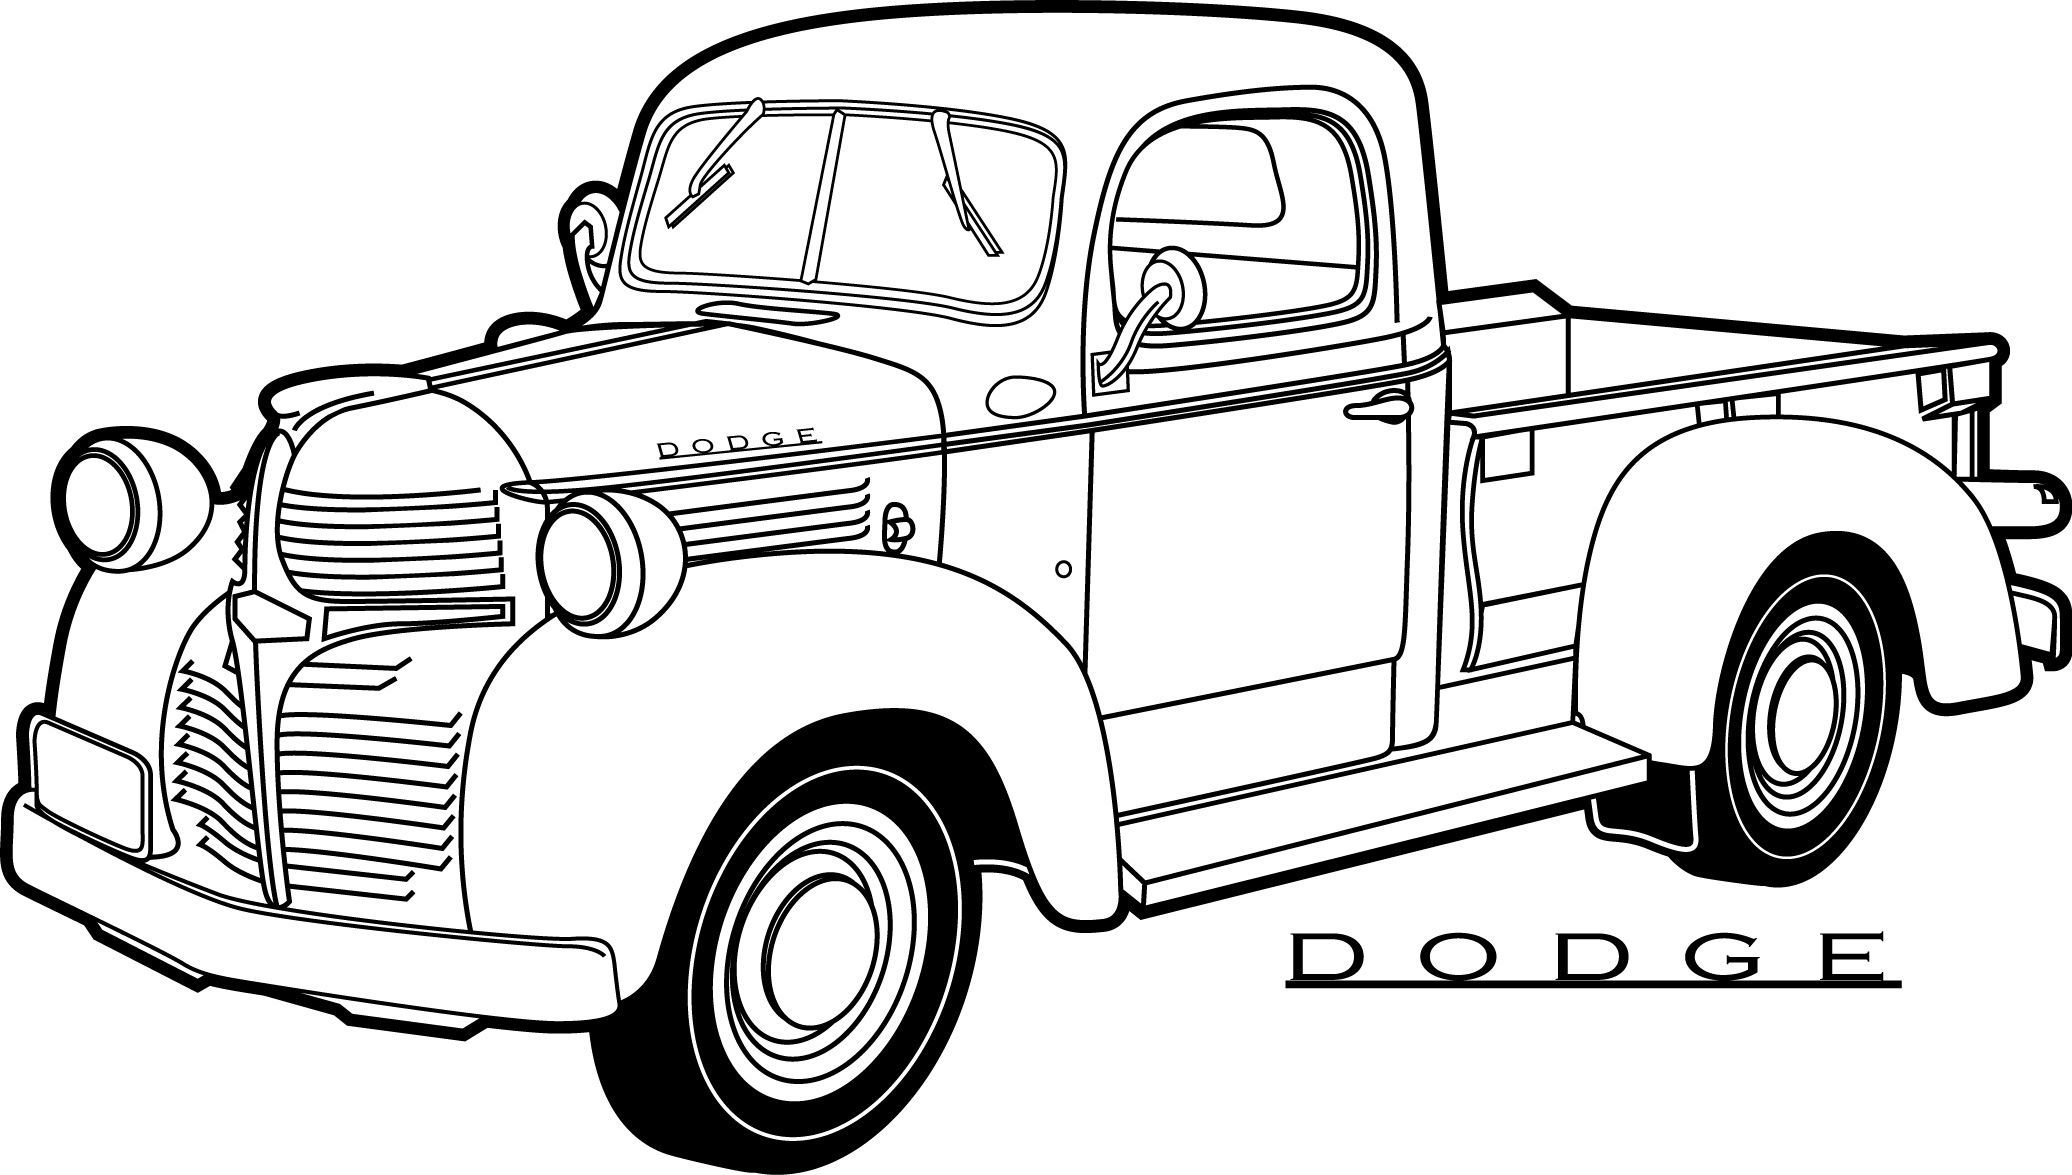 30 Coloring Pages Of Cars And Trucks | Auto's | Truck